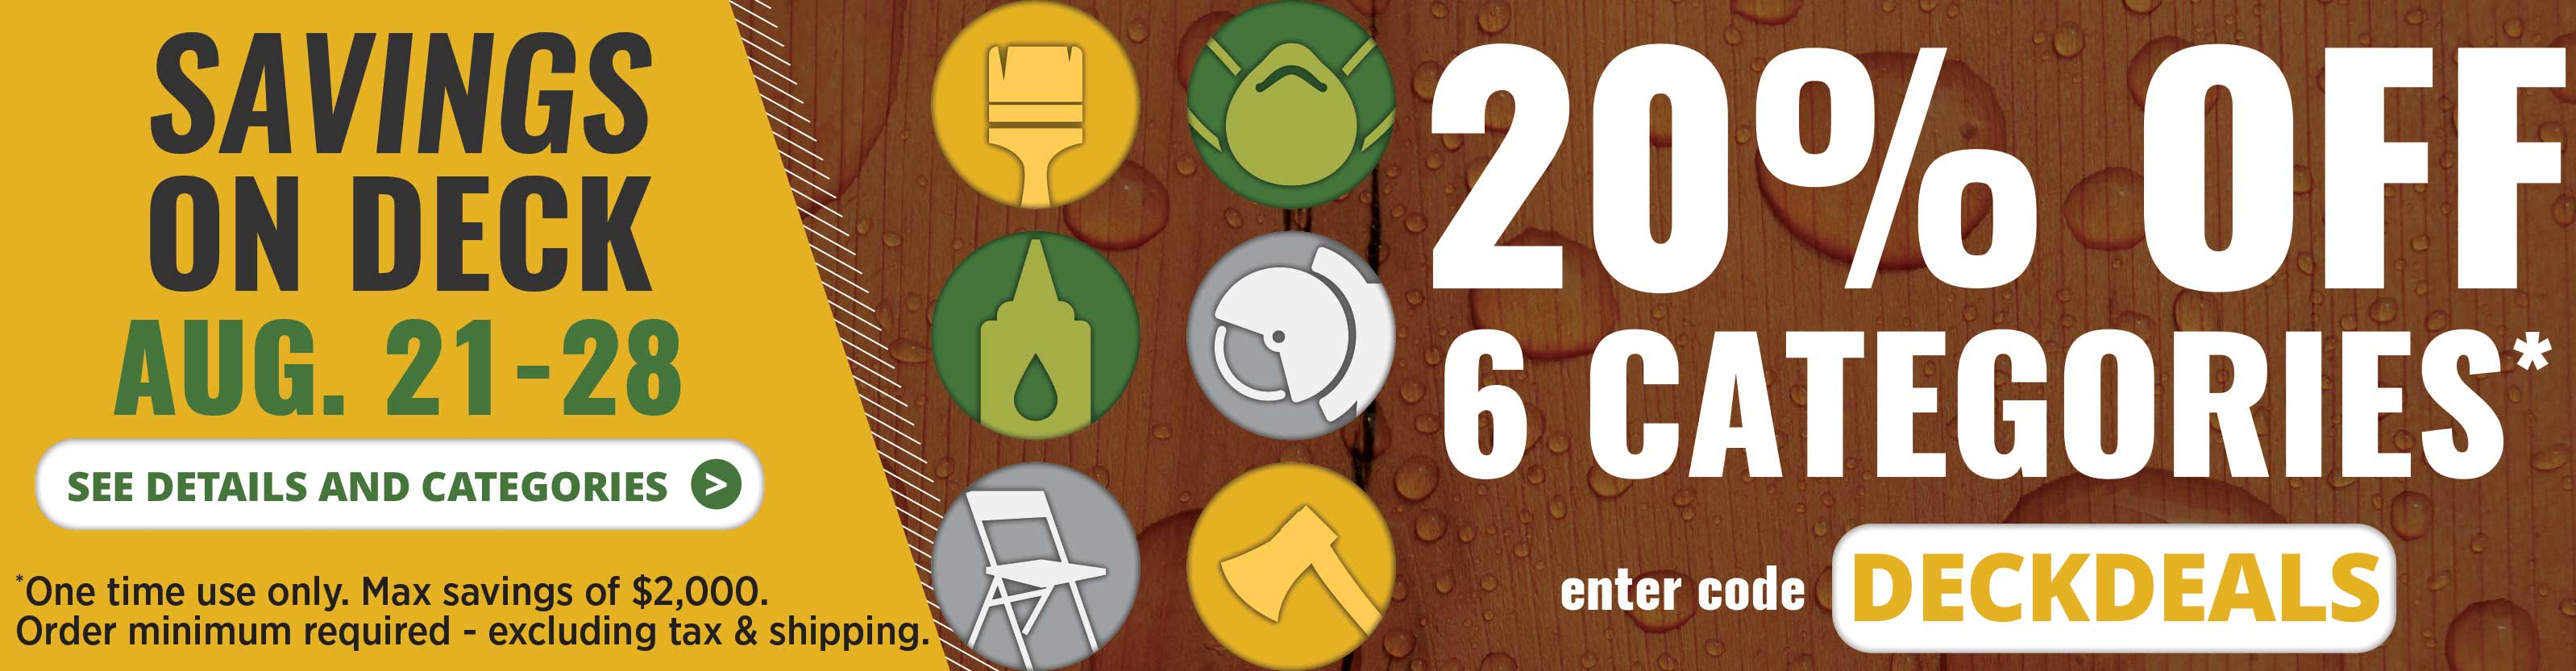 20% off 6 categories. Enter code: DECKDEALS. Savings on deck. August 21-28. See details and categories.